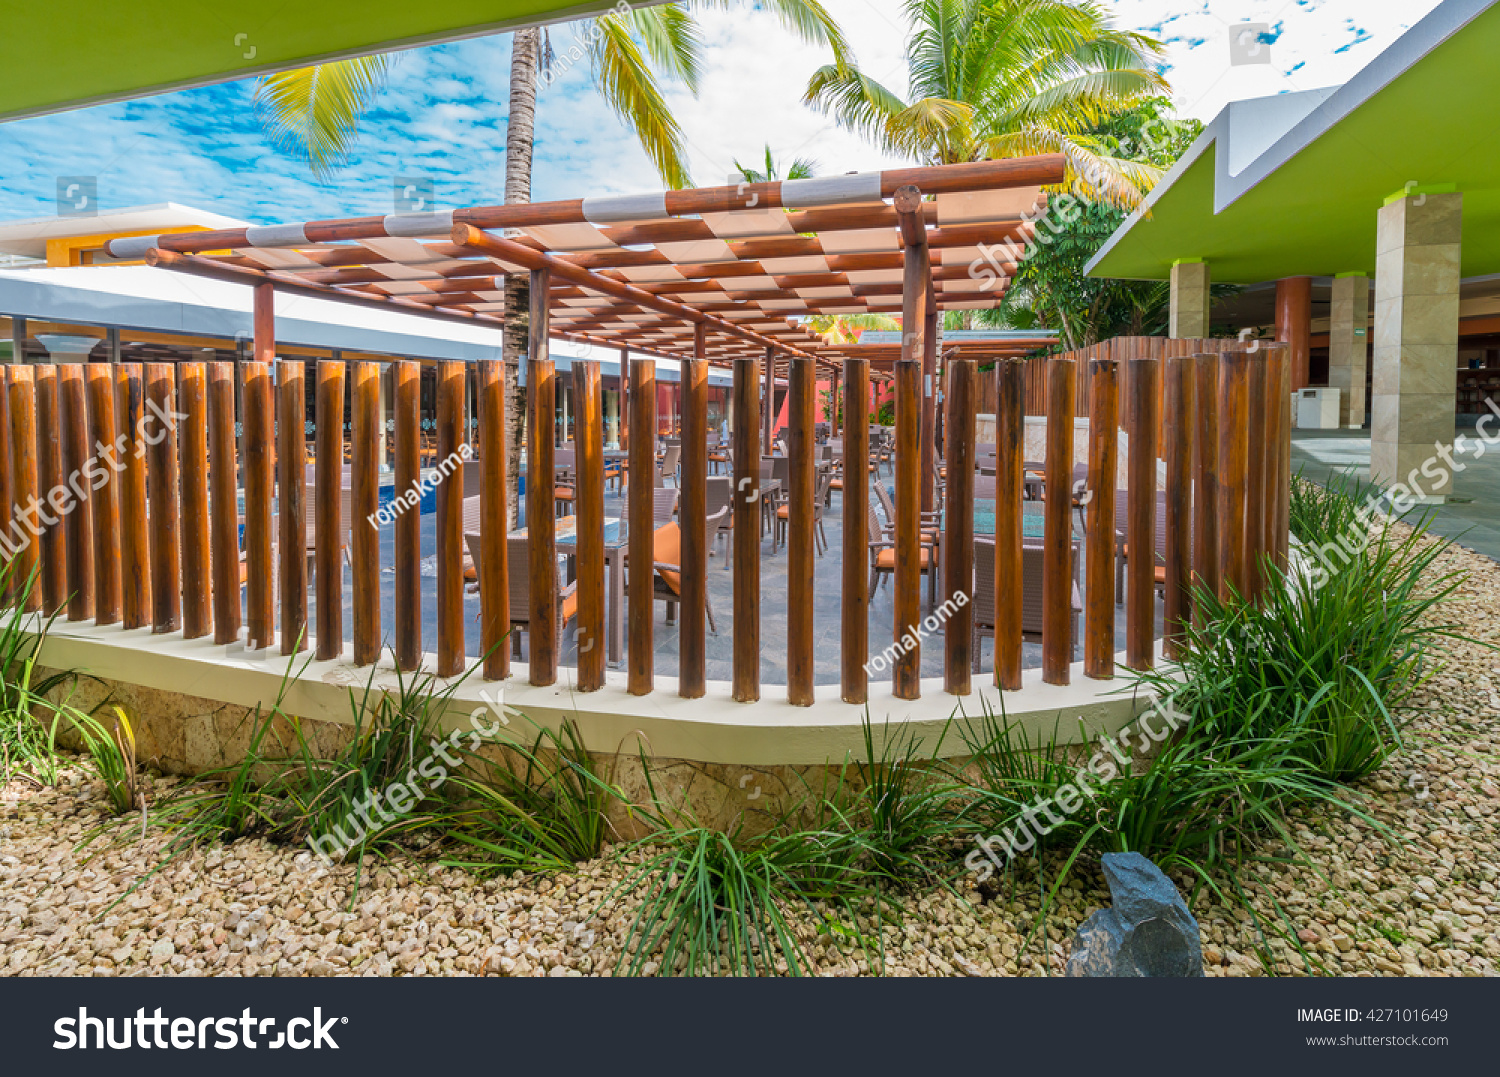 behind decorative fence tropical caribbean style stock photo